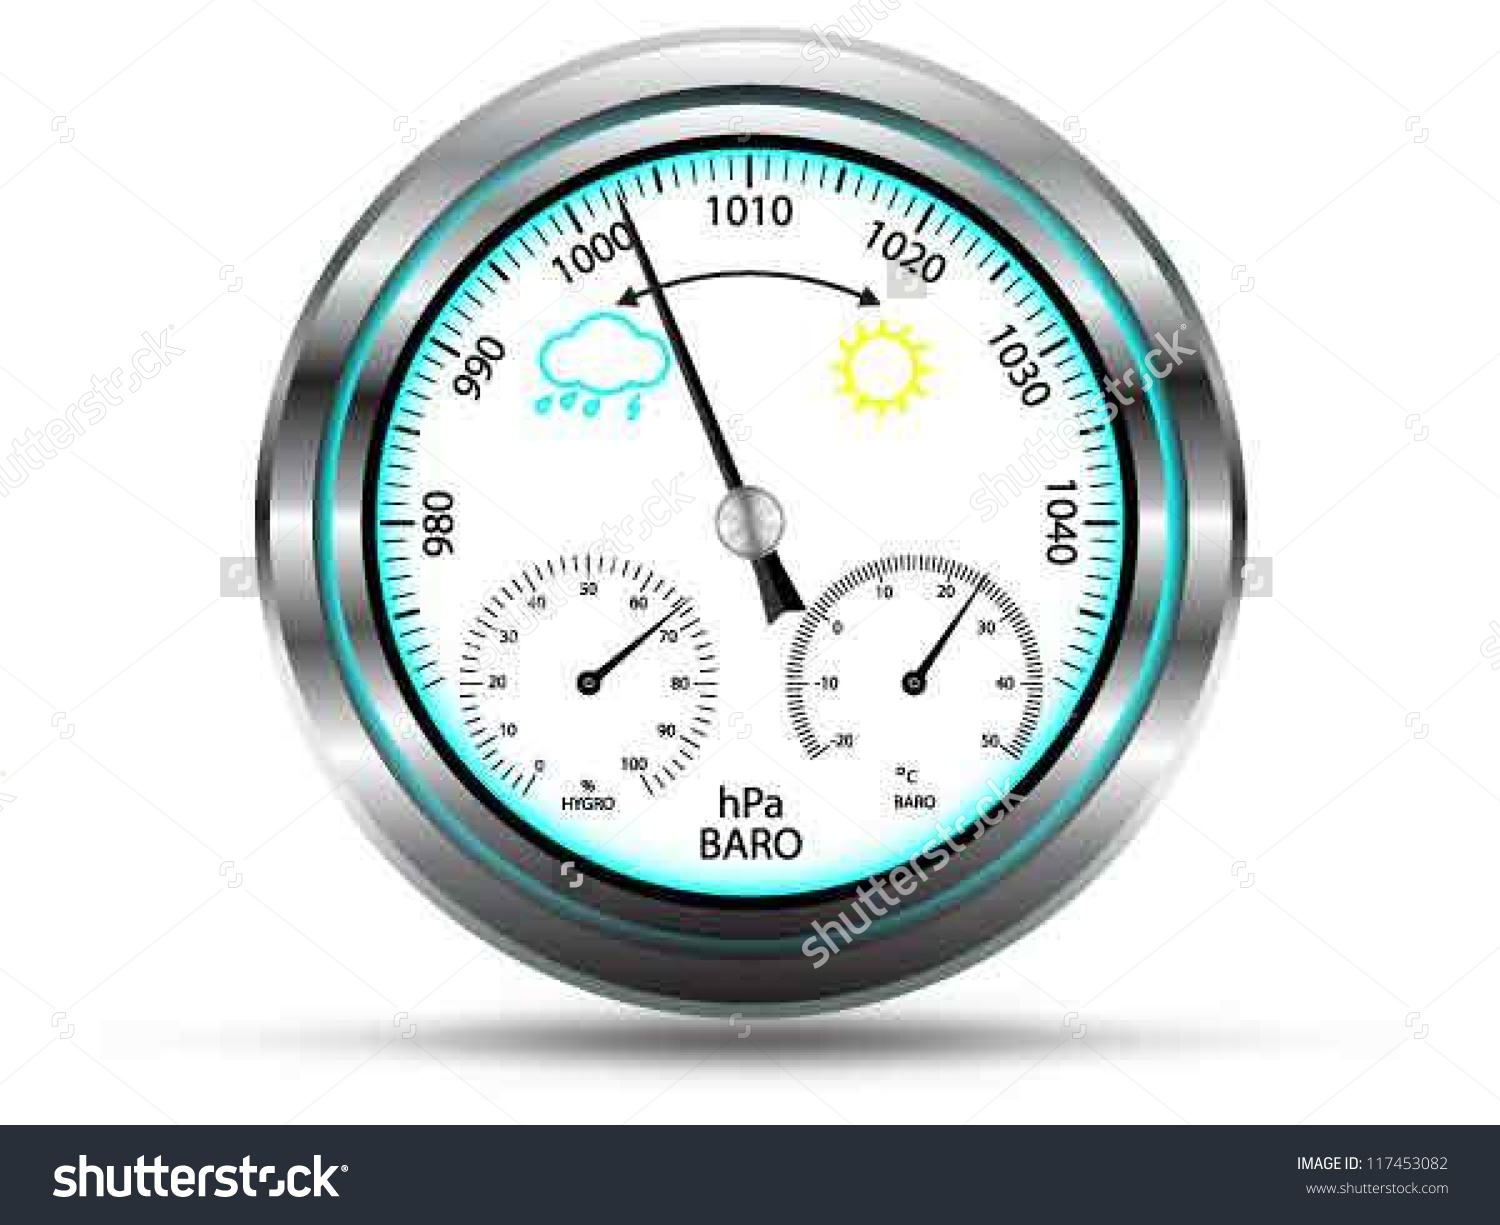 Humidity Gauge Stock Vectors & Vector Clip Art.